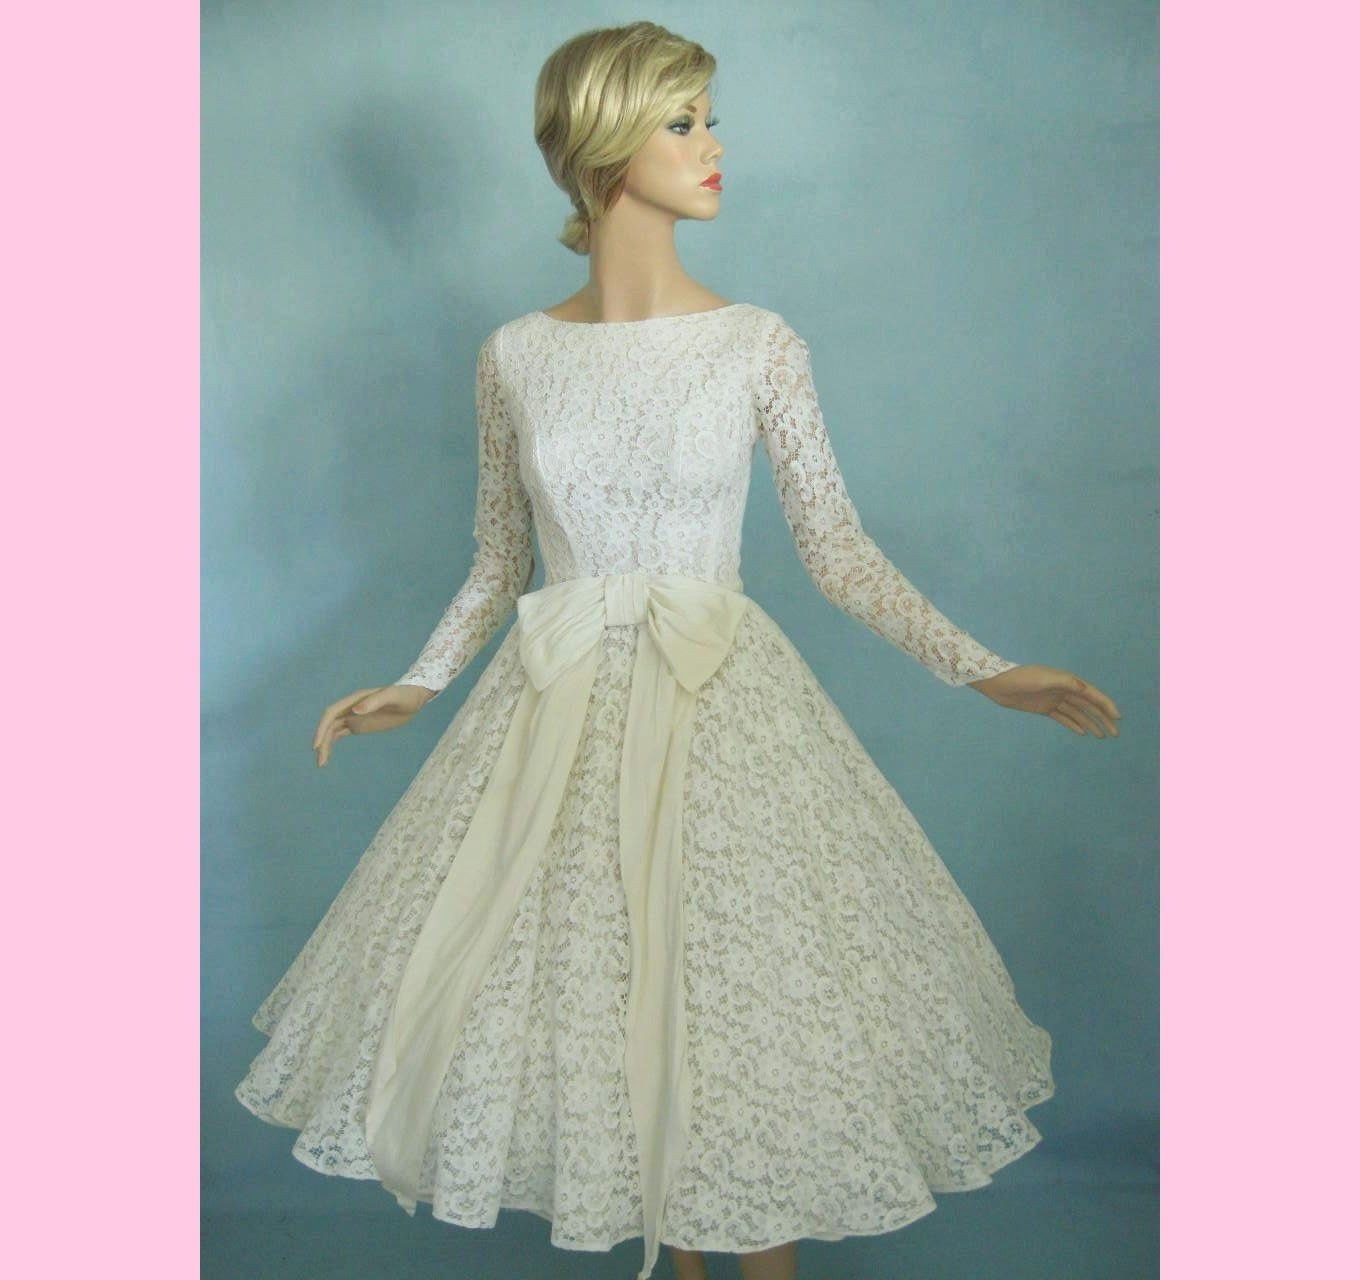 Circle skirt 50s lace vintage wedding prom dress by for Circle skirt wedding dress